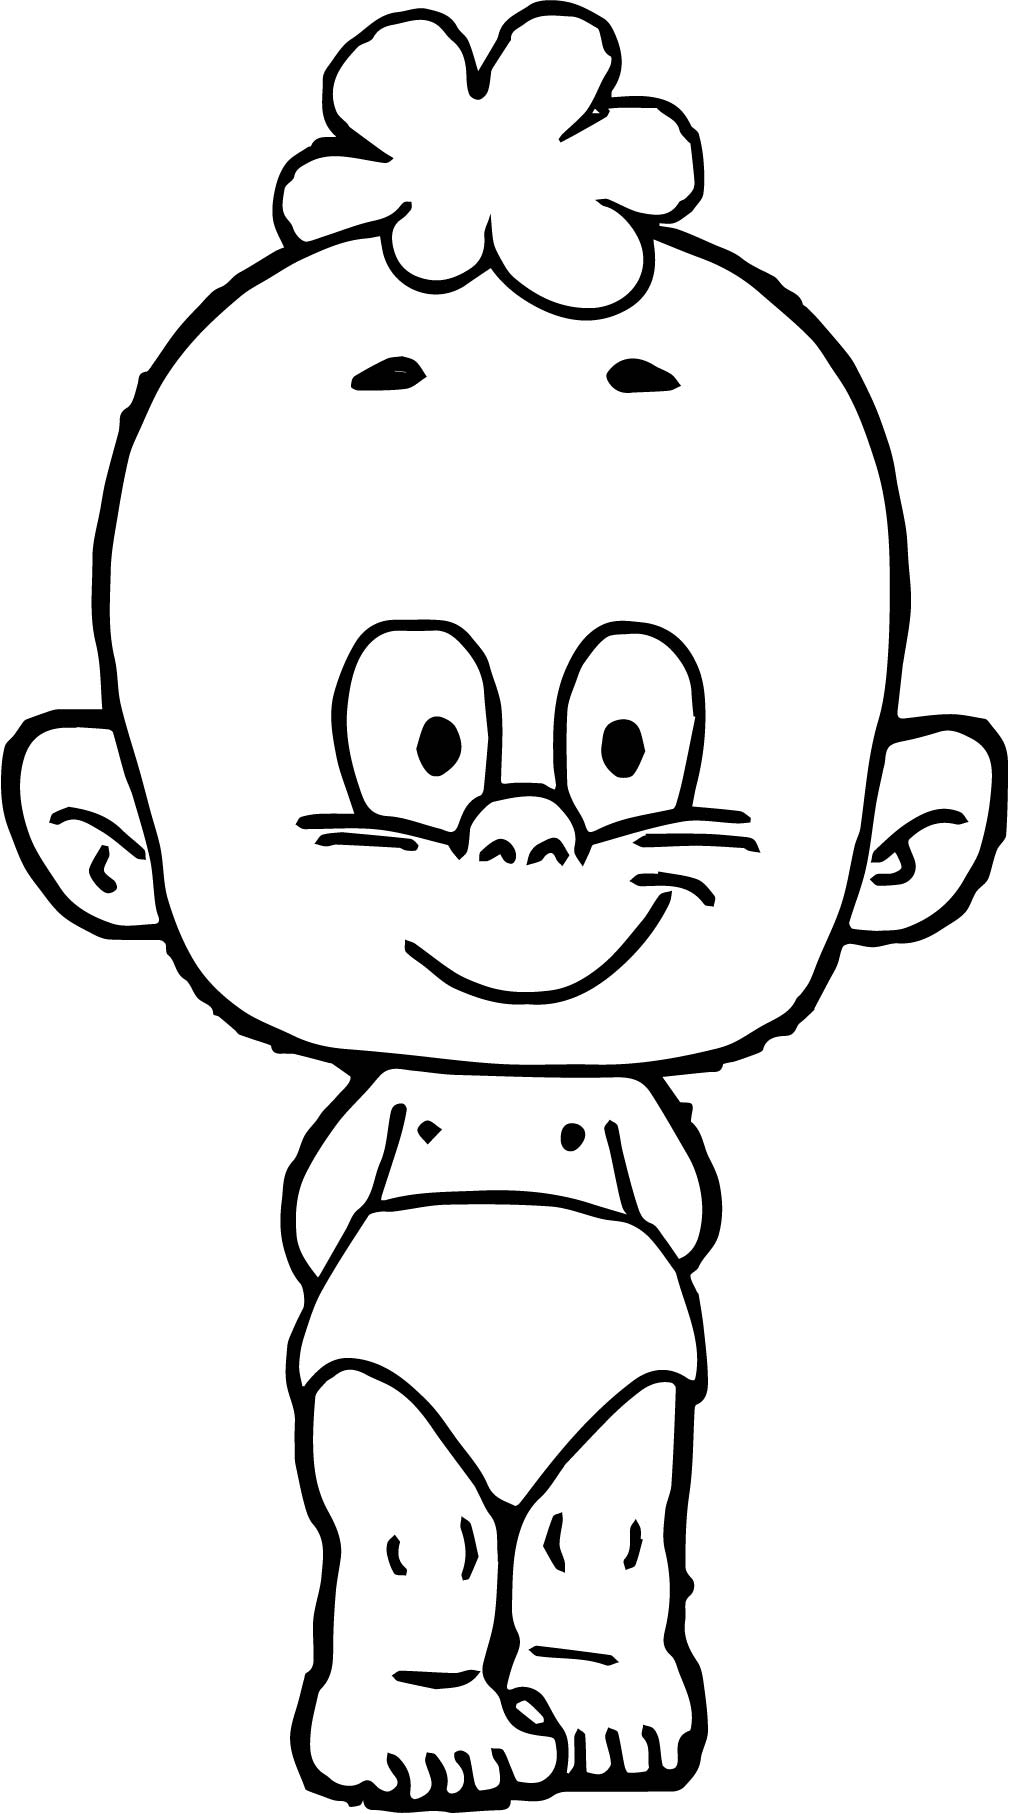 Cartoon Baby Smile Boy Coloring Page Wecoloringpage